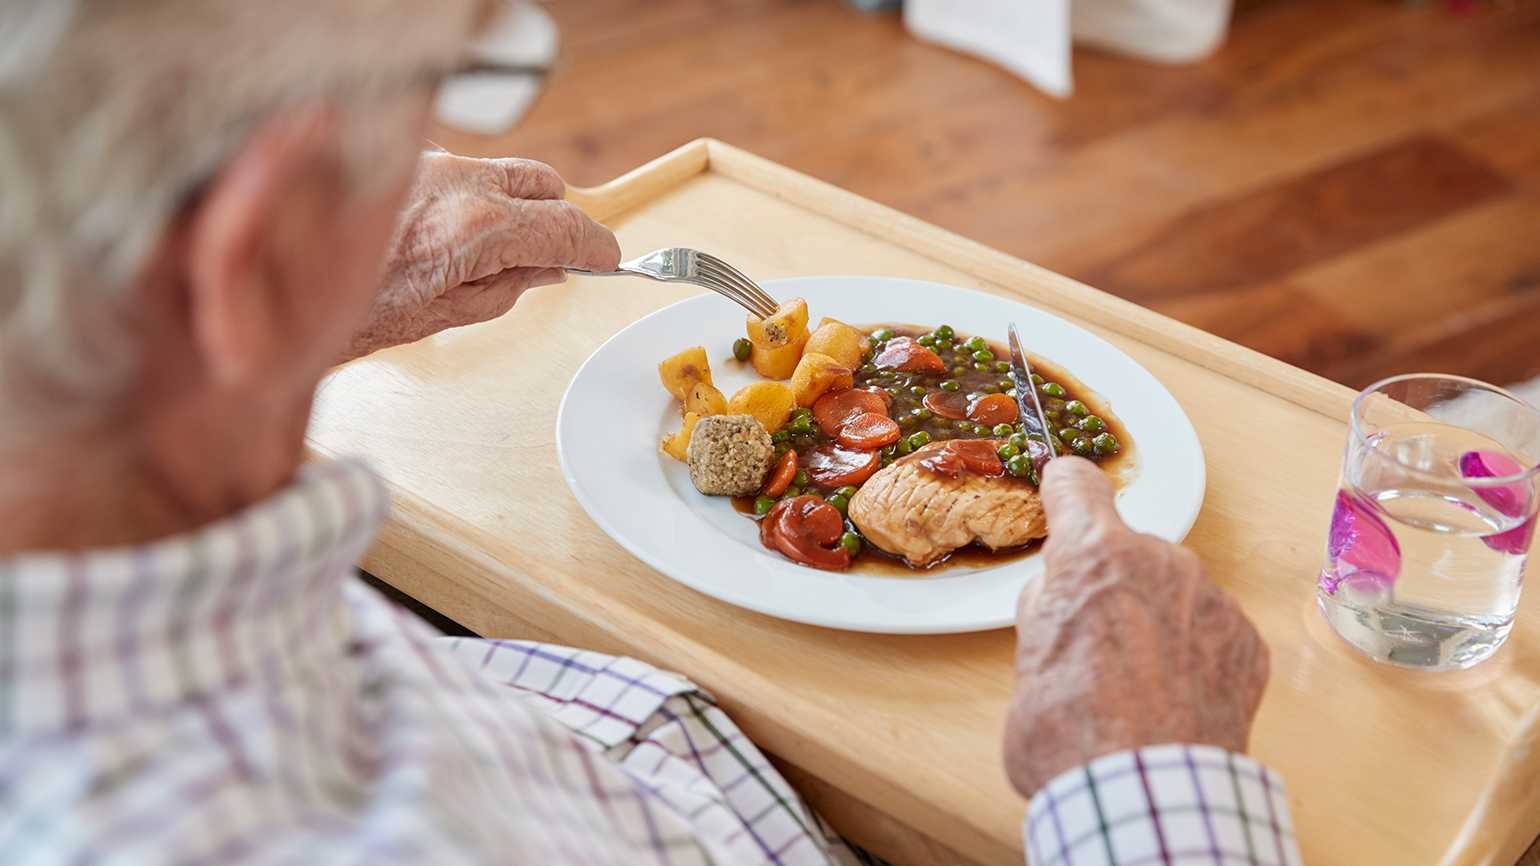 How to Prevent Malnutrition in Older Adults